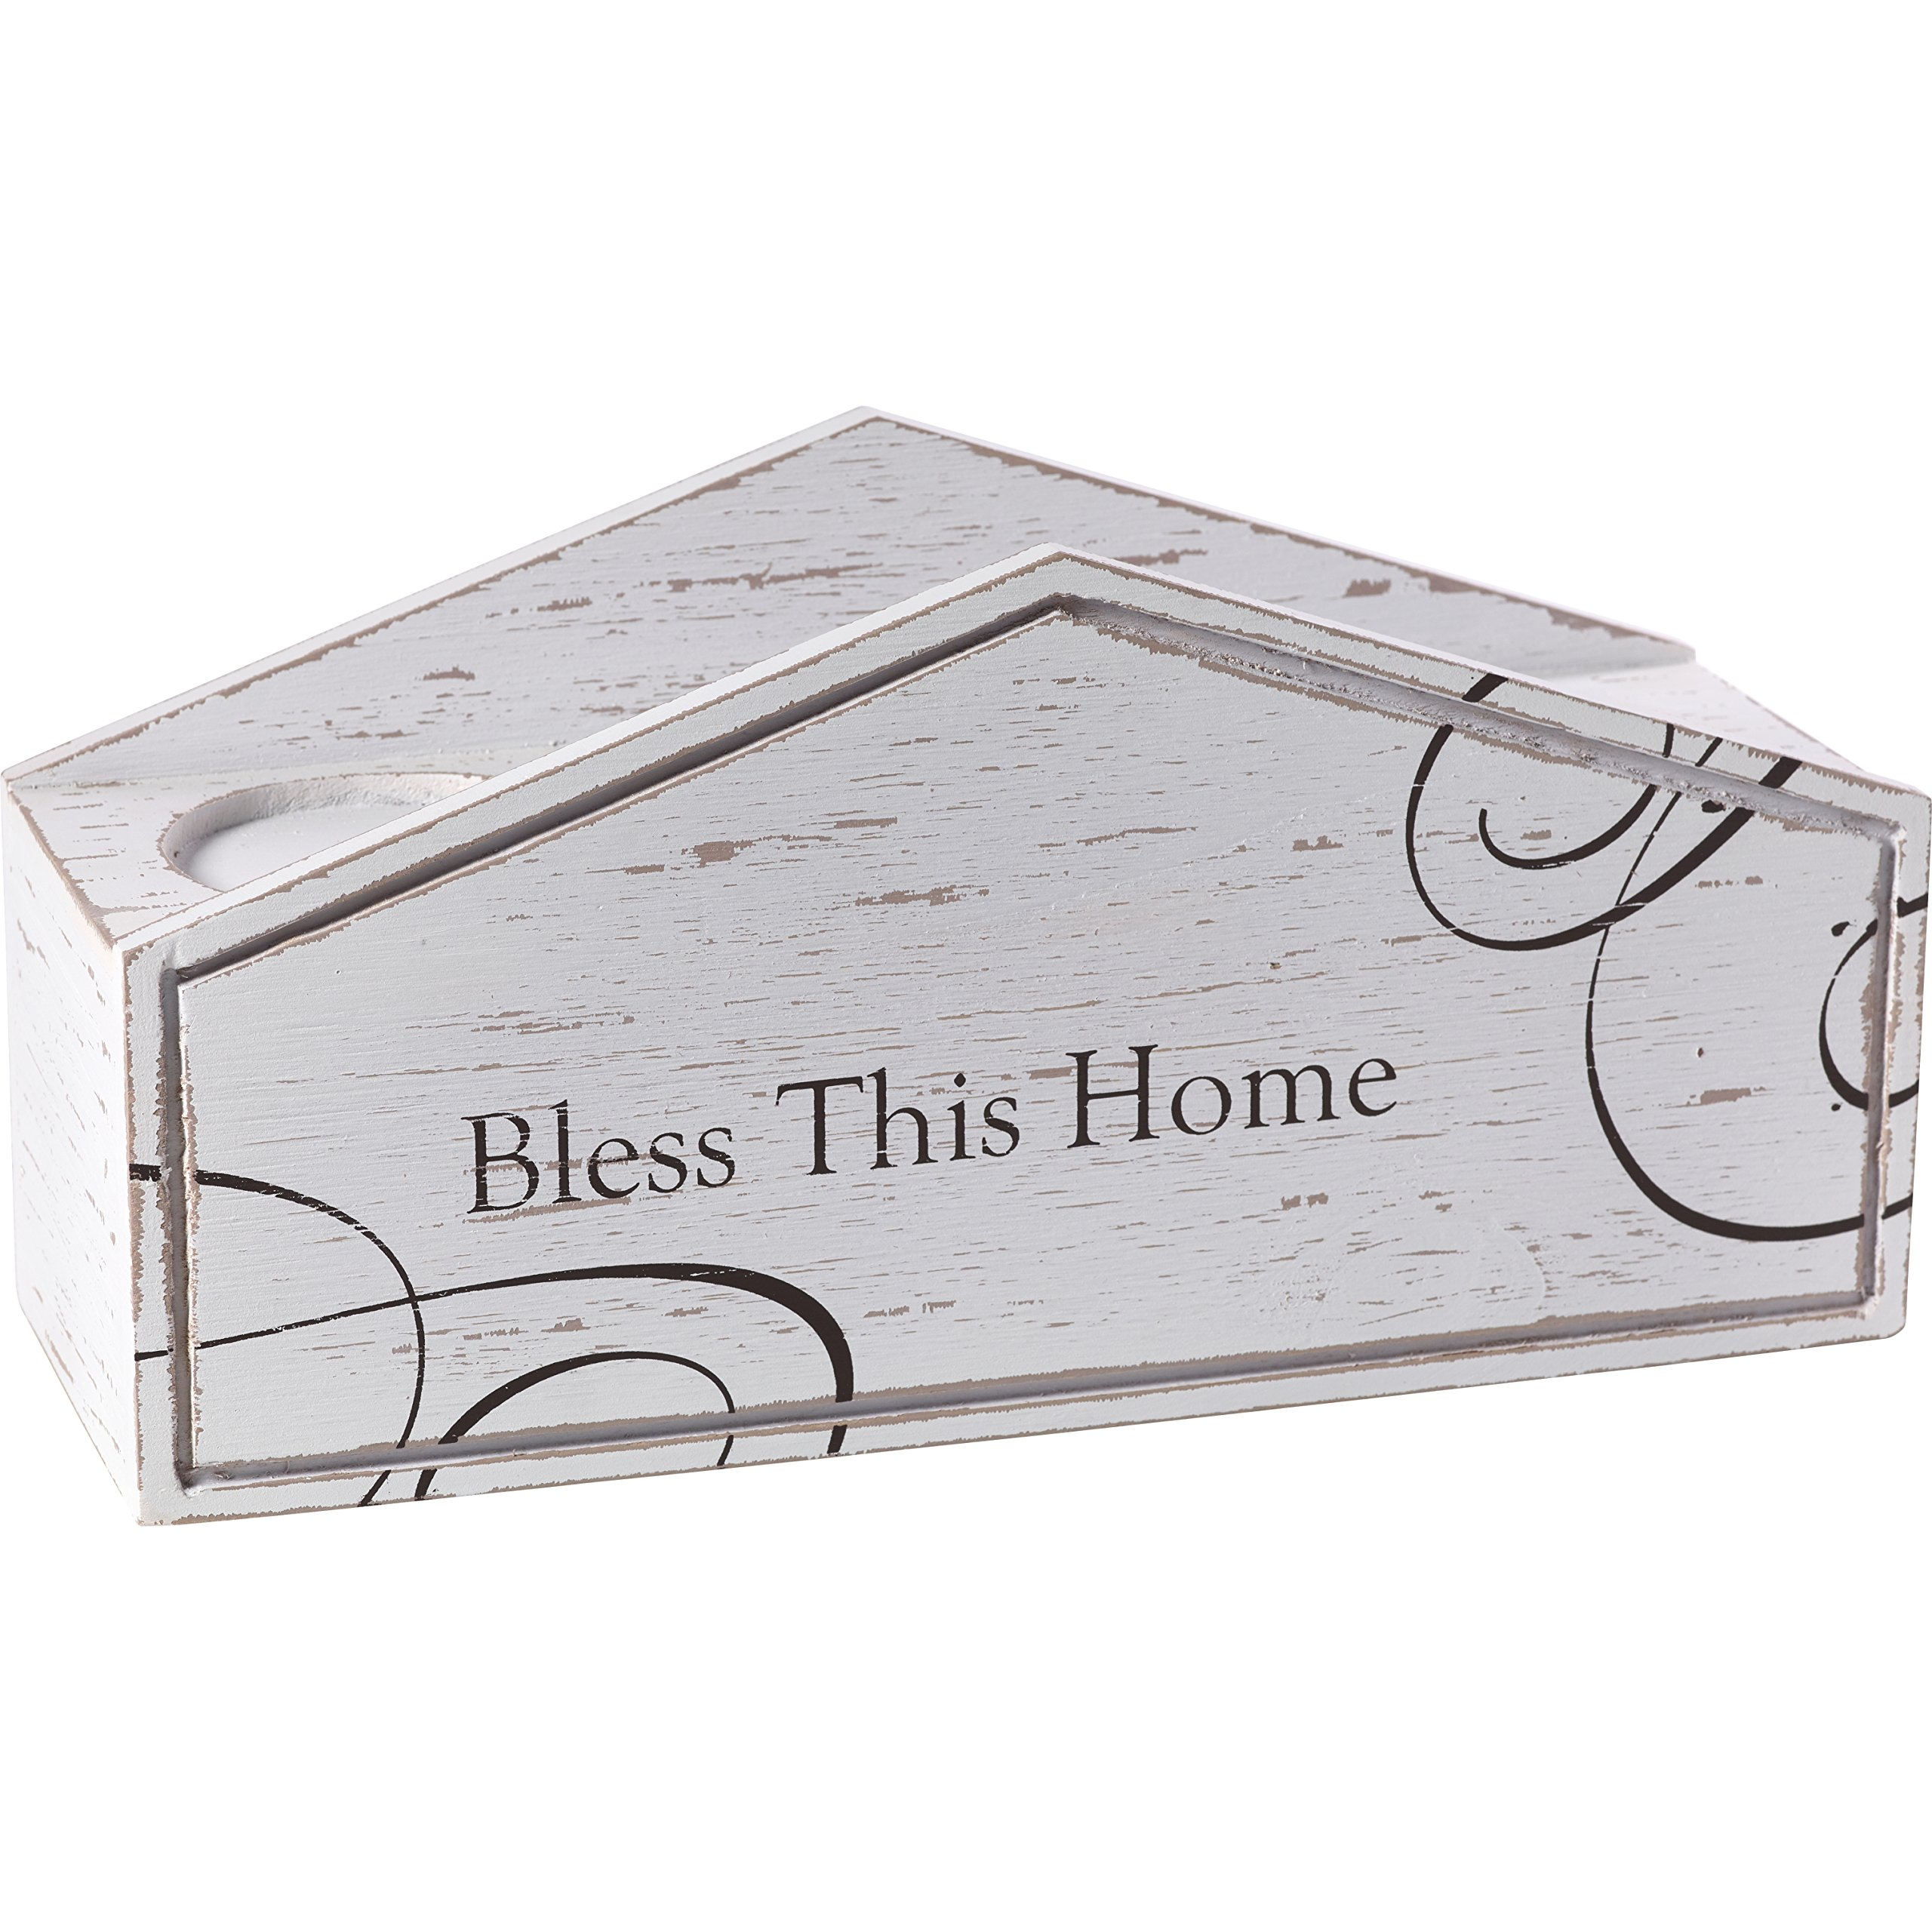 Precious Moments Bless This Home Rustic Farmhouse Distressed Wooden Pillar Candle Home Décor Display Box 173428